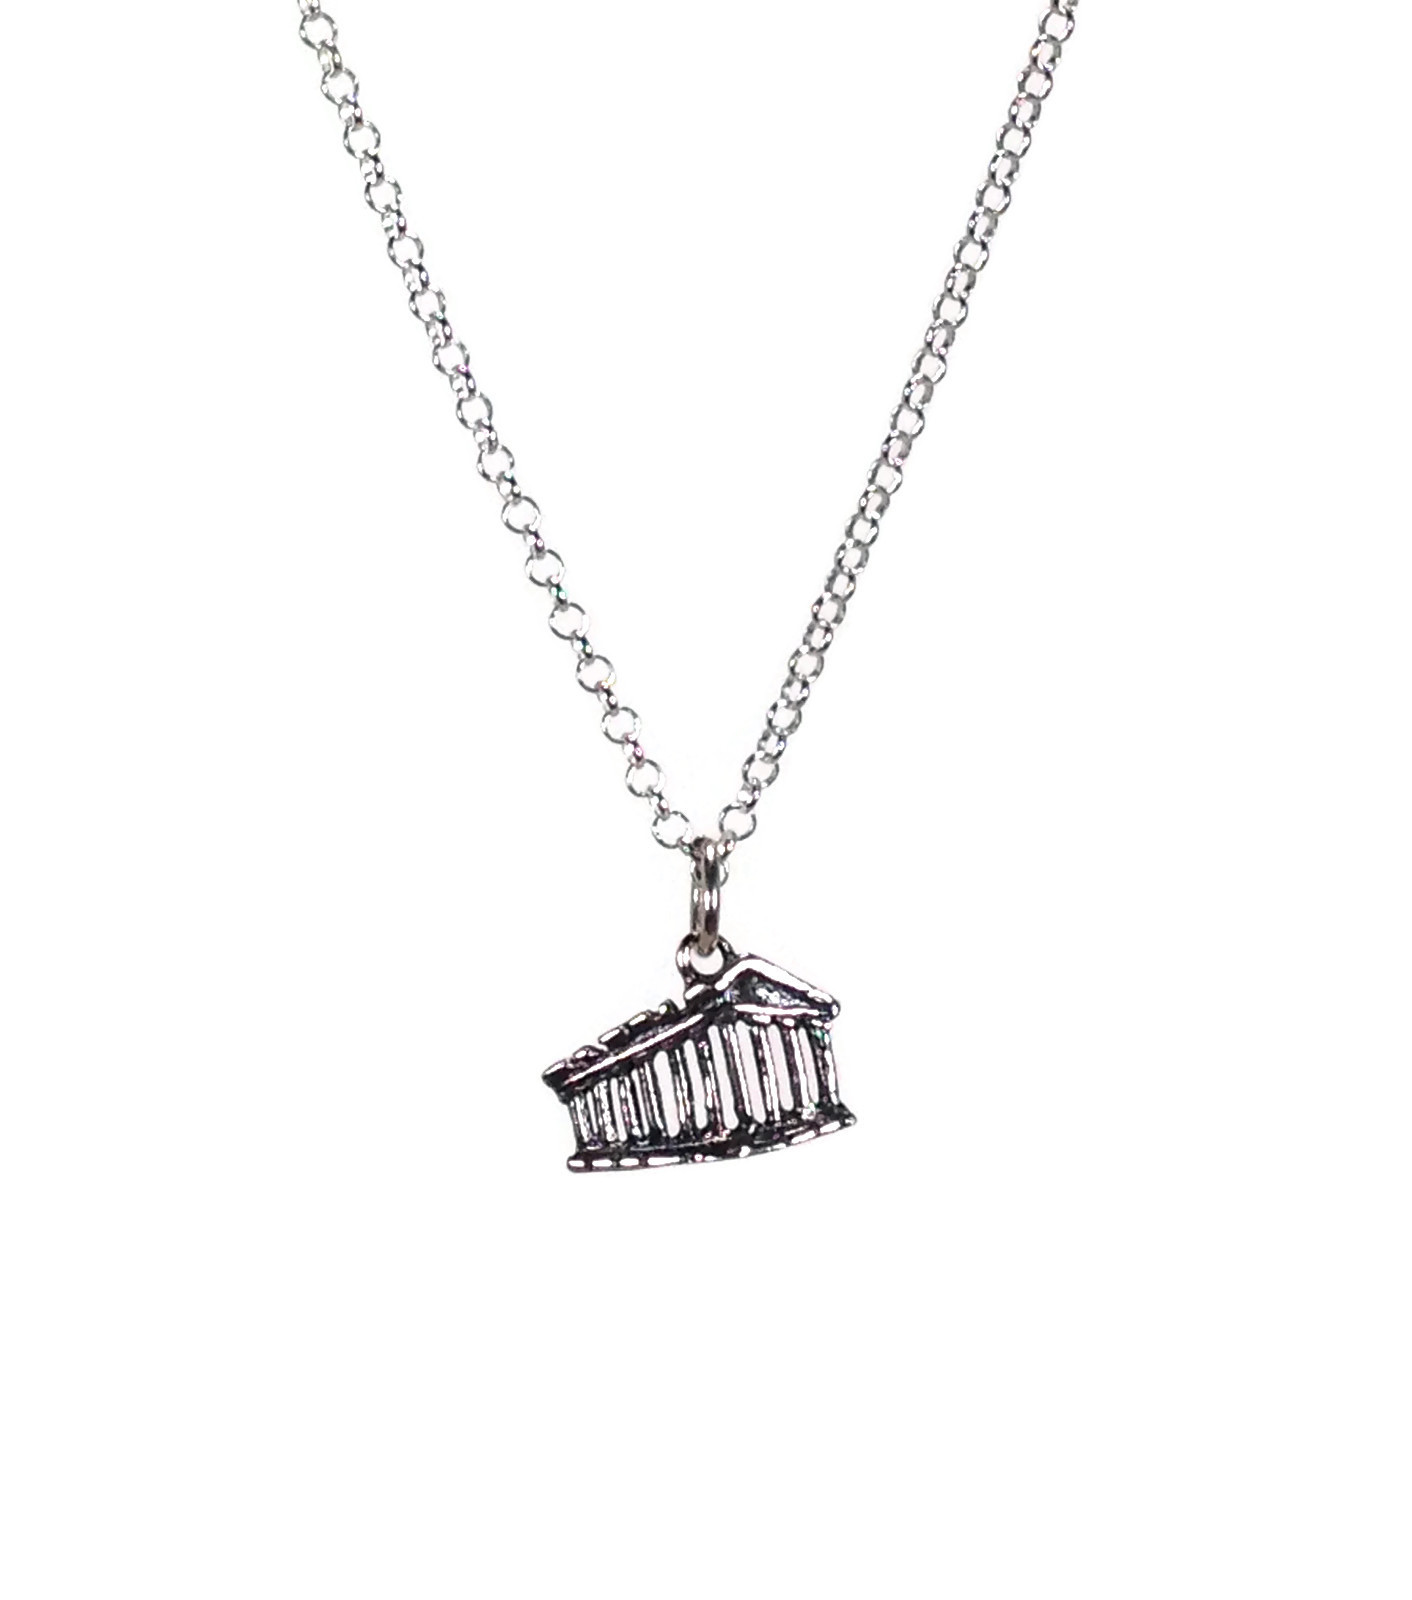 Parthenon pendant necklace in sterling silver